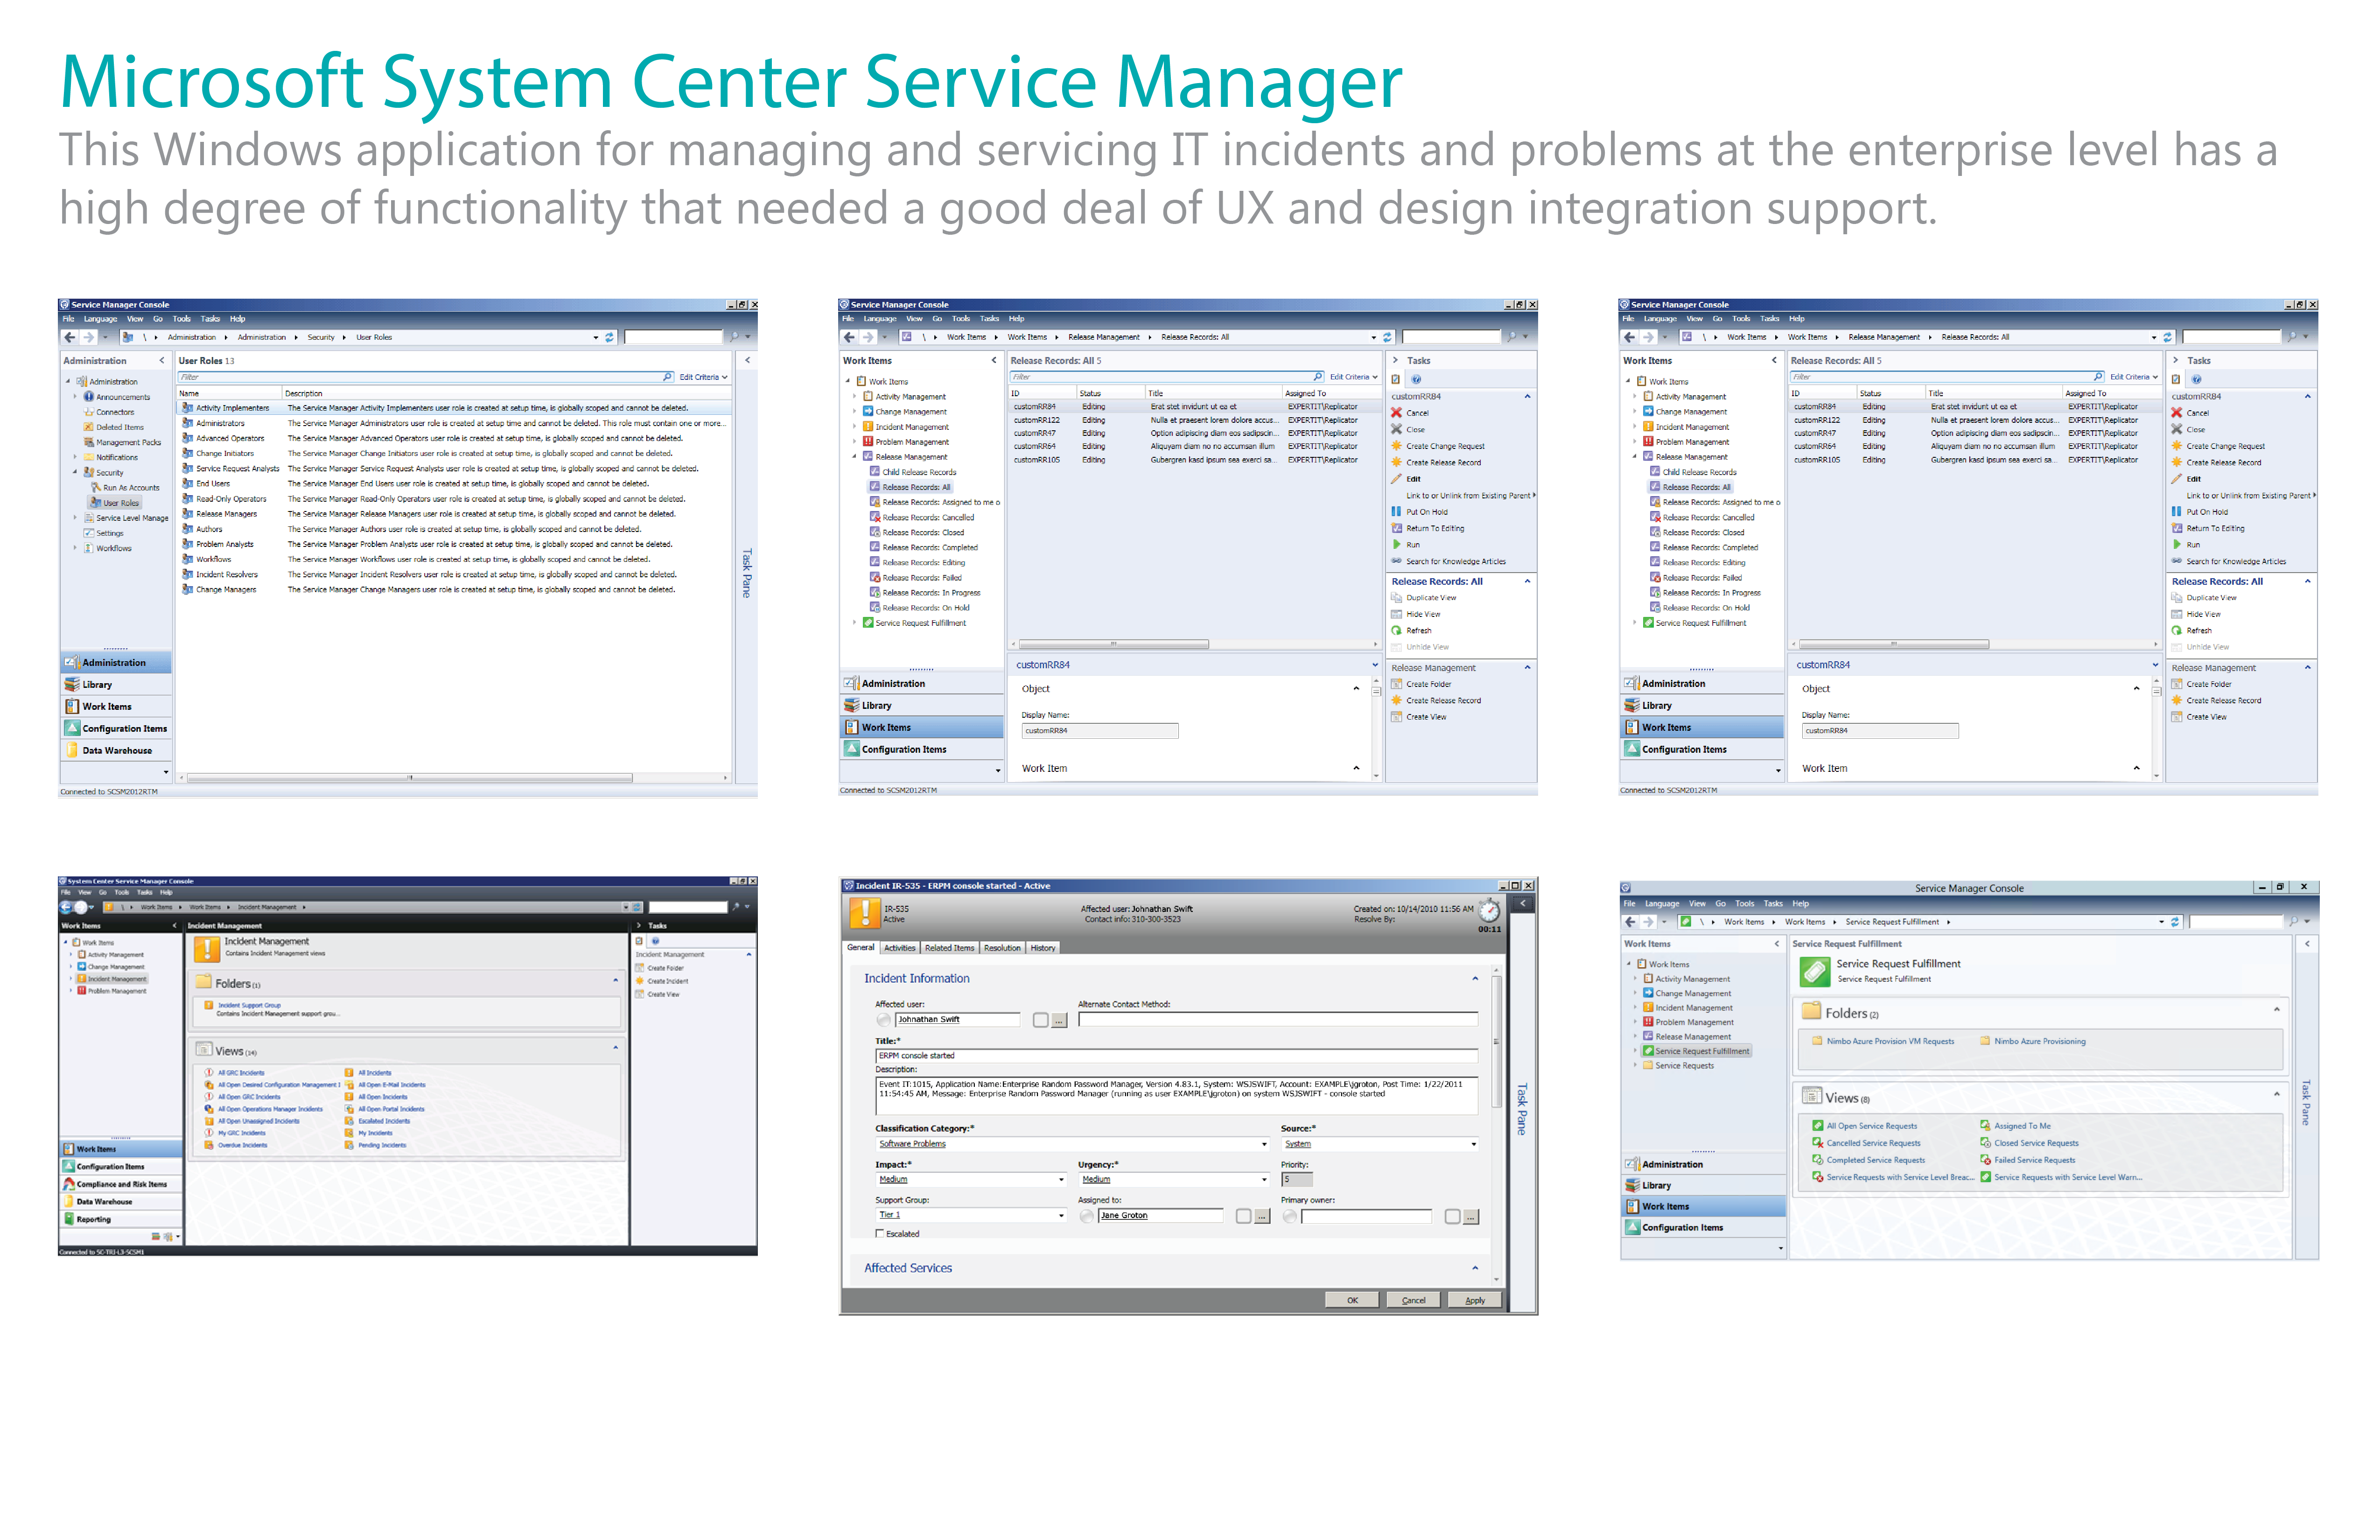 Microsoft Service Center System Manager